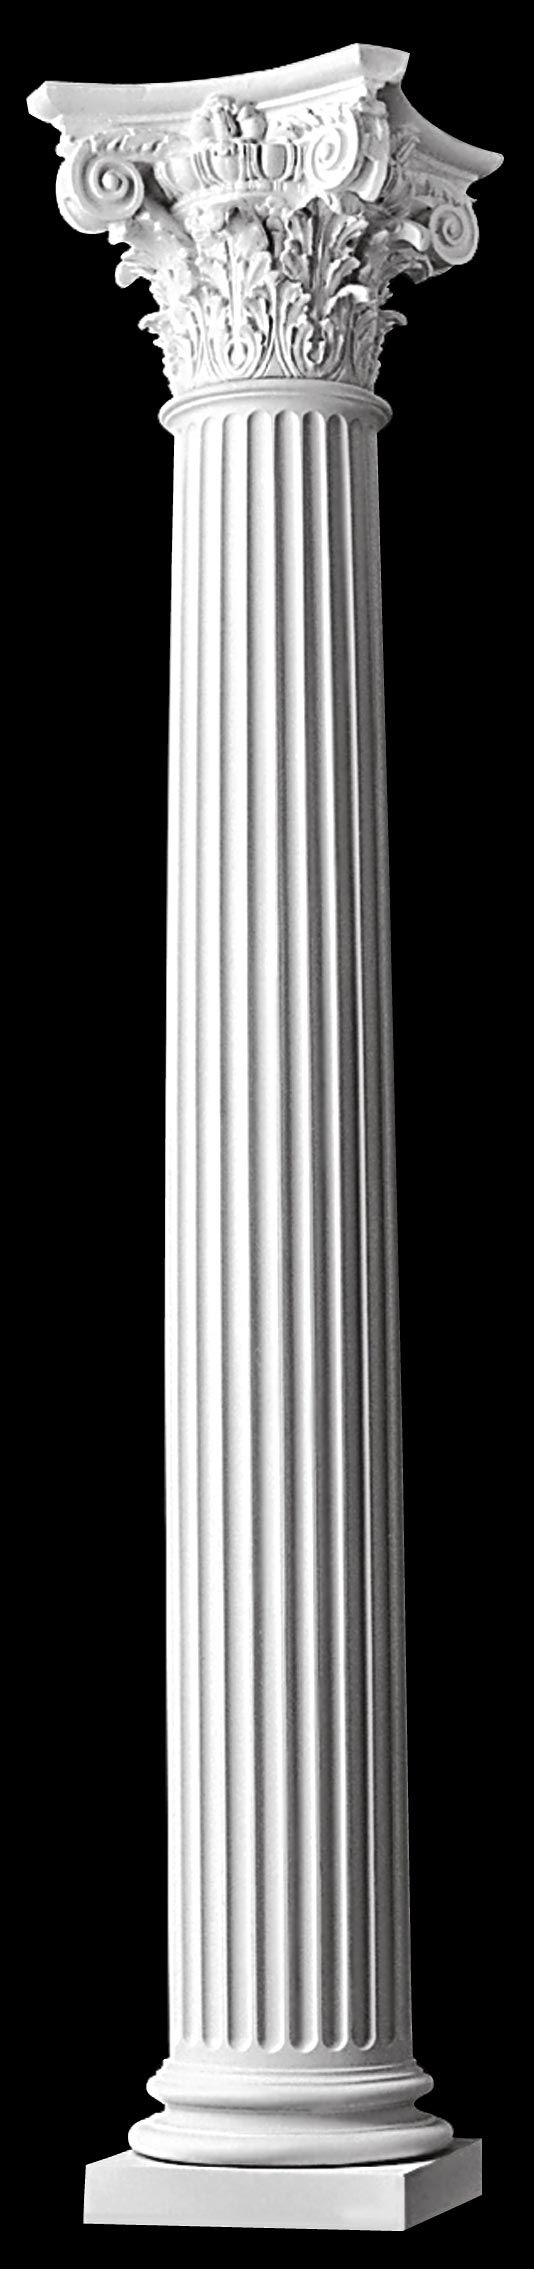 Best 25 fluted columns ideas that you will like on pinterest for Crown columns fiberglass